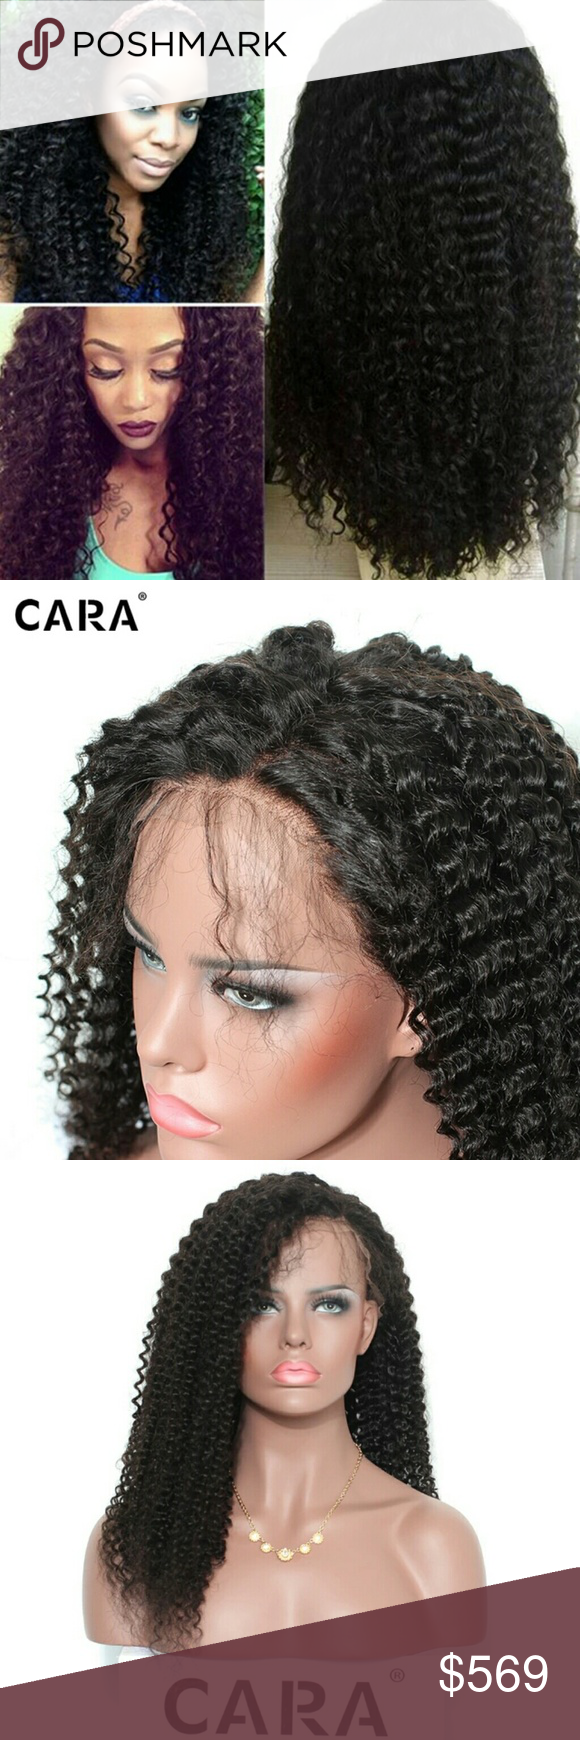 Curly Brazilian Beauty Lacefront Wig 18-20 inches Lace Front Human Hair Wigs Brazilian Kinky Curly Full Lace Human Hair Wigs 8A Pre Plucked Lace Front Wigs For Black Women                  aliexkinkybrazilian Accessories Hair Accessories